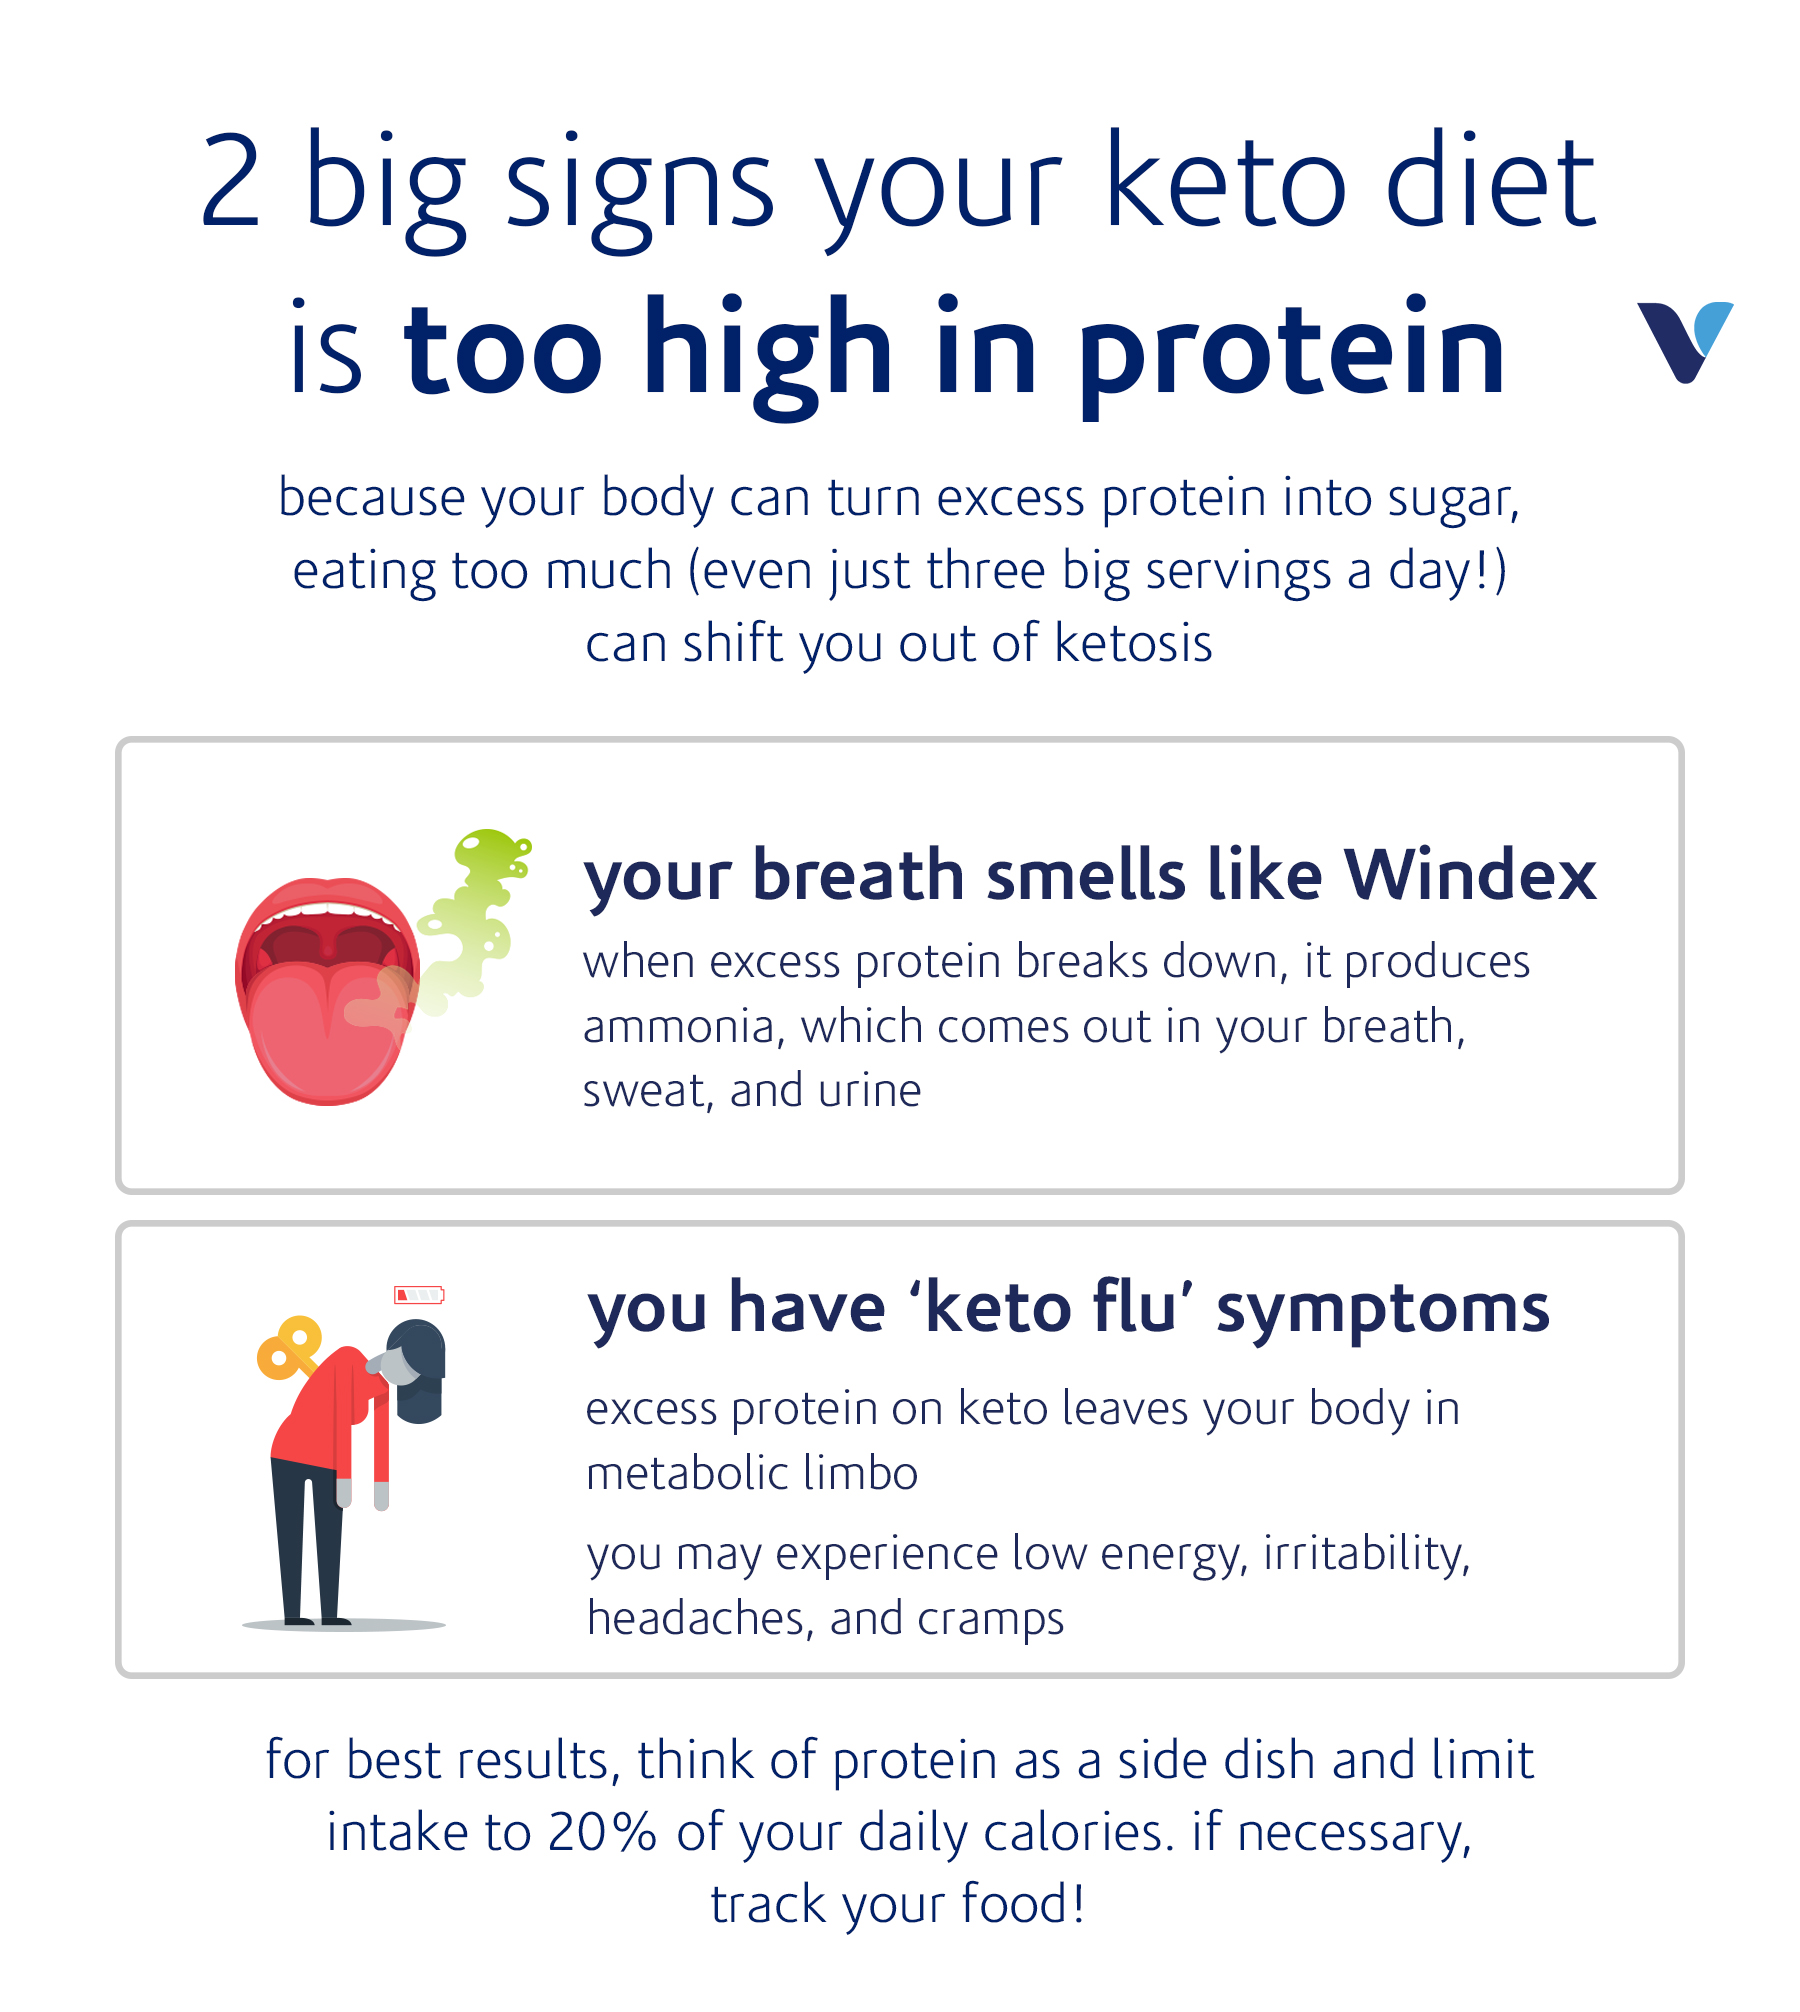 keto diet make people irritability